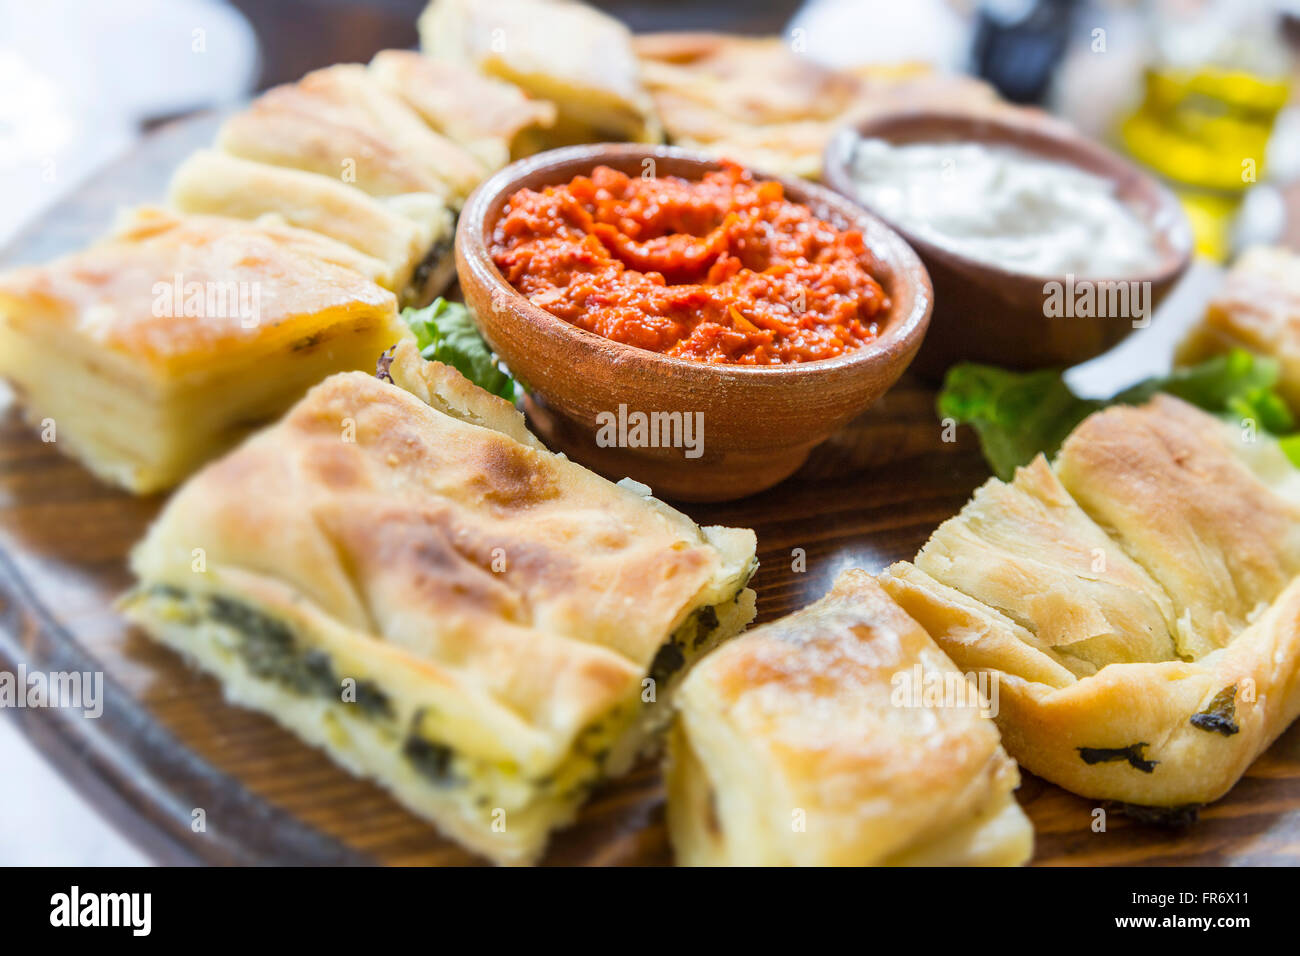 Republic of Macedonia, Ohrid, listed as World Heritage by UNESCO Site, traditional dish - Stock Image